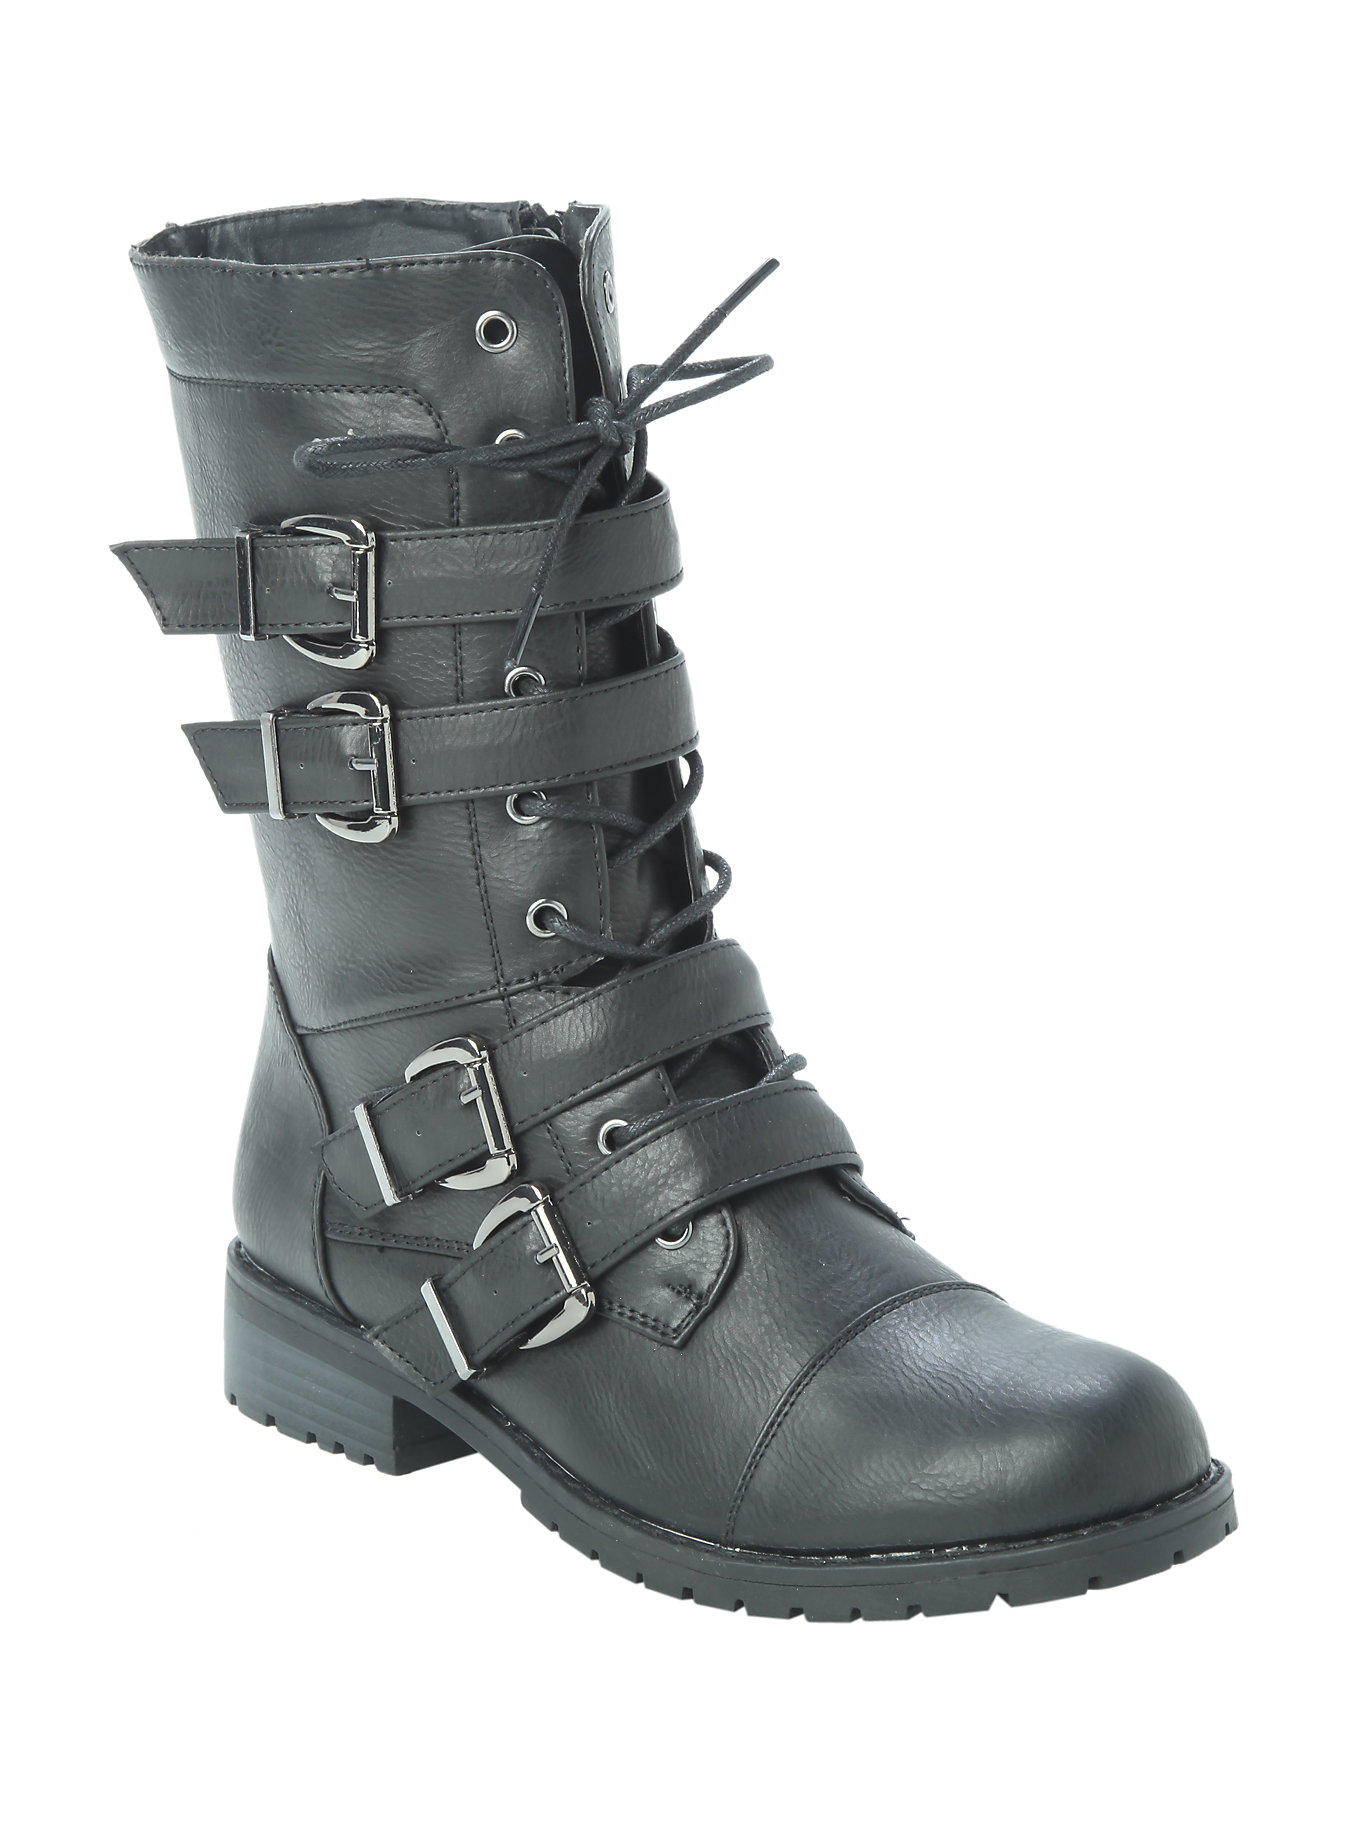 Black Four Buckle Strap Combat Boot From Hot Topic